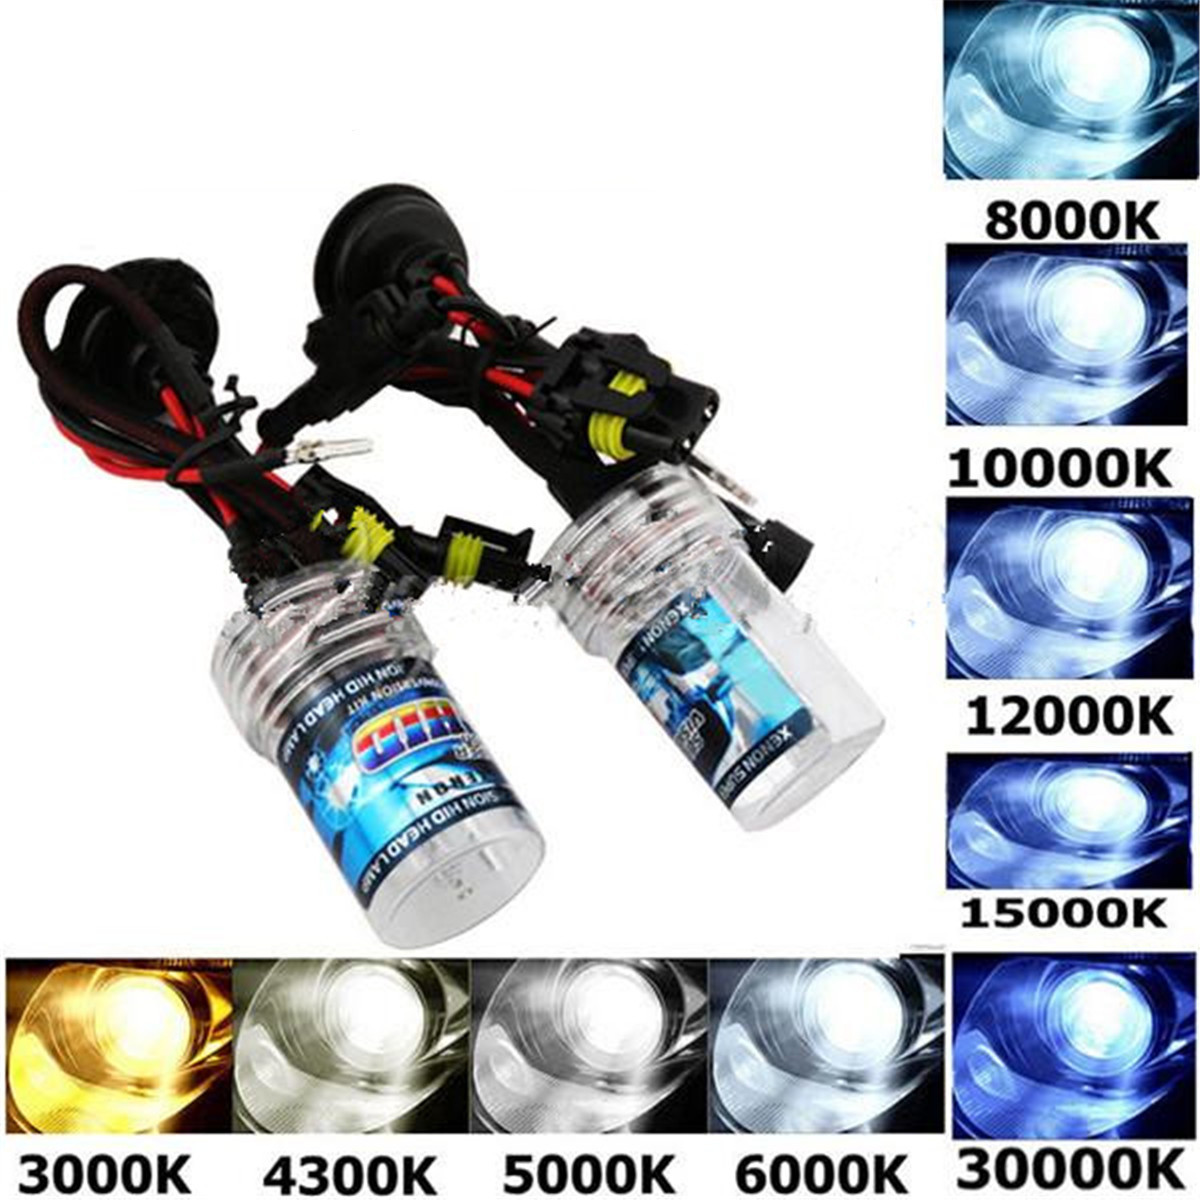 1 paire 12 V 55 W H7 voiture phares Xenon lampe ampoules 3000 K-30000 K 4600LM-2600LM pour HID phares ampoules1 paire 12 V 55 W H7 voiture phares Xenon lampe ampoules 3000 K-30000 K 4600LM-2600LM pour HID phares ampoules